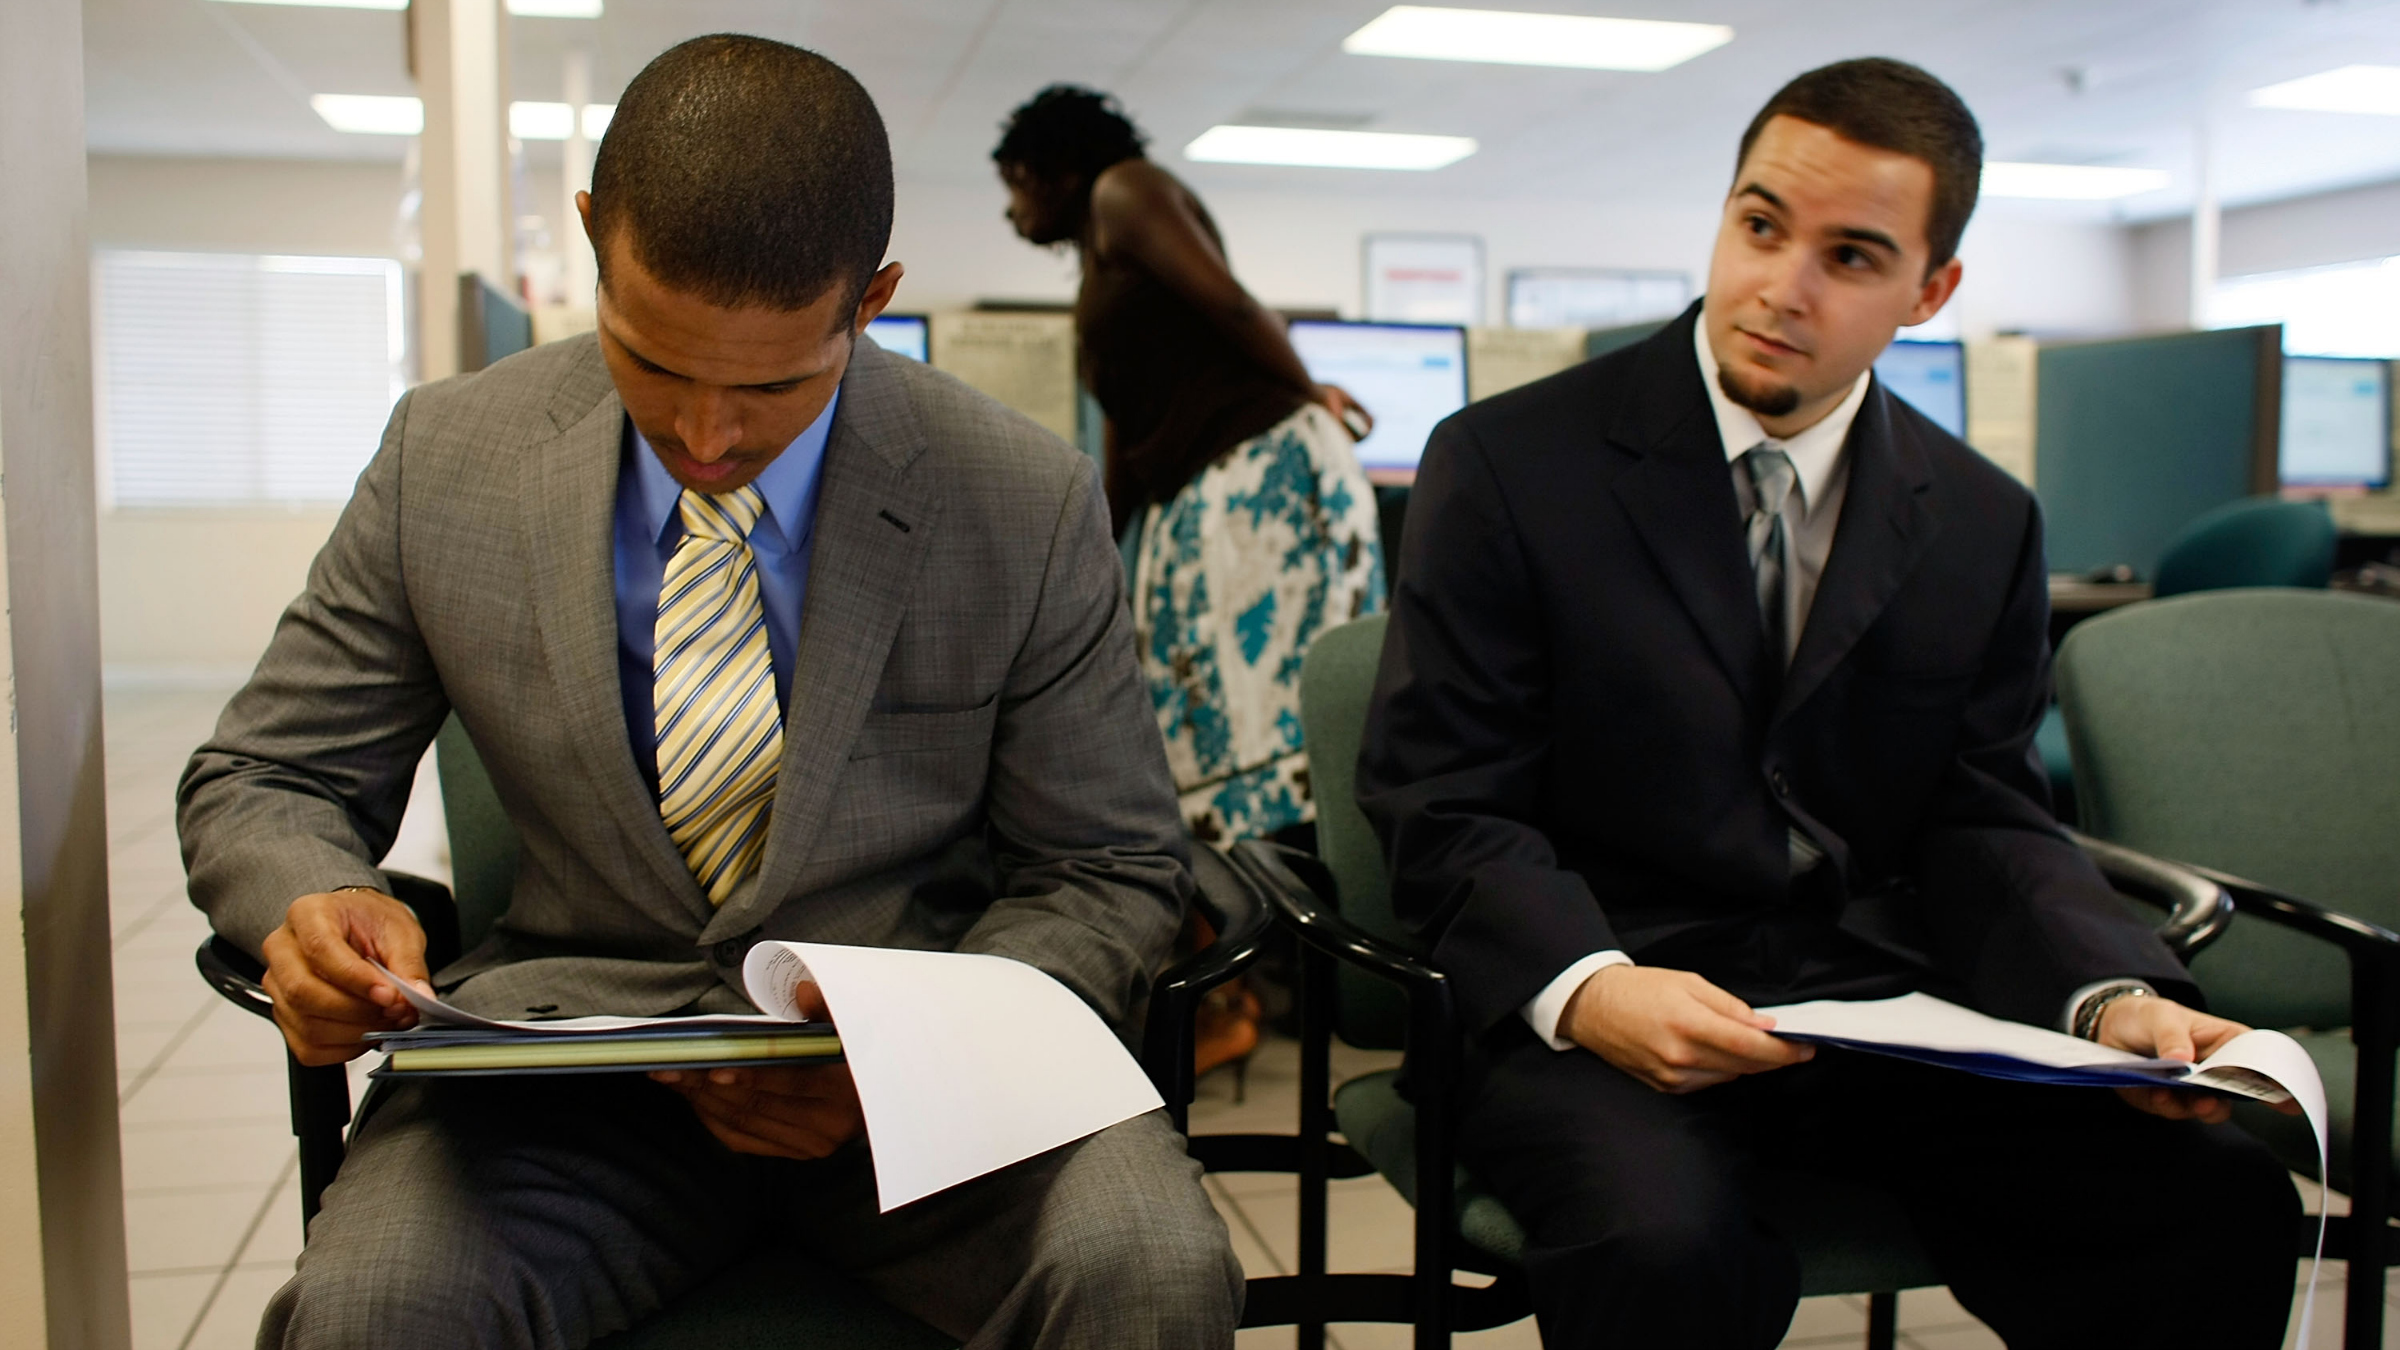 Two applicants prepare for job interview